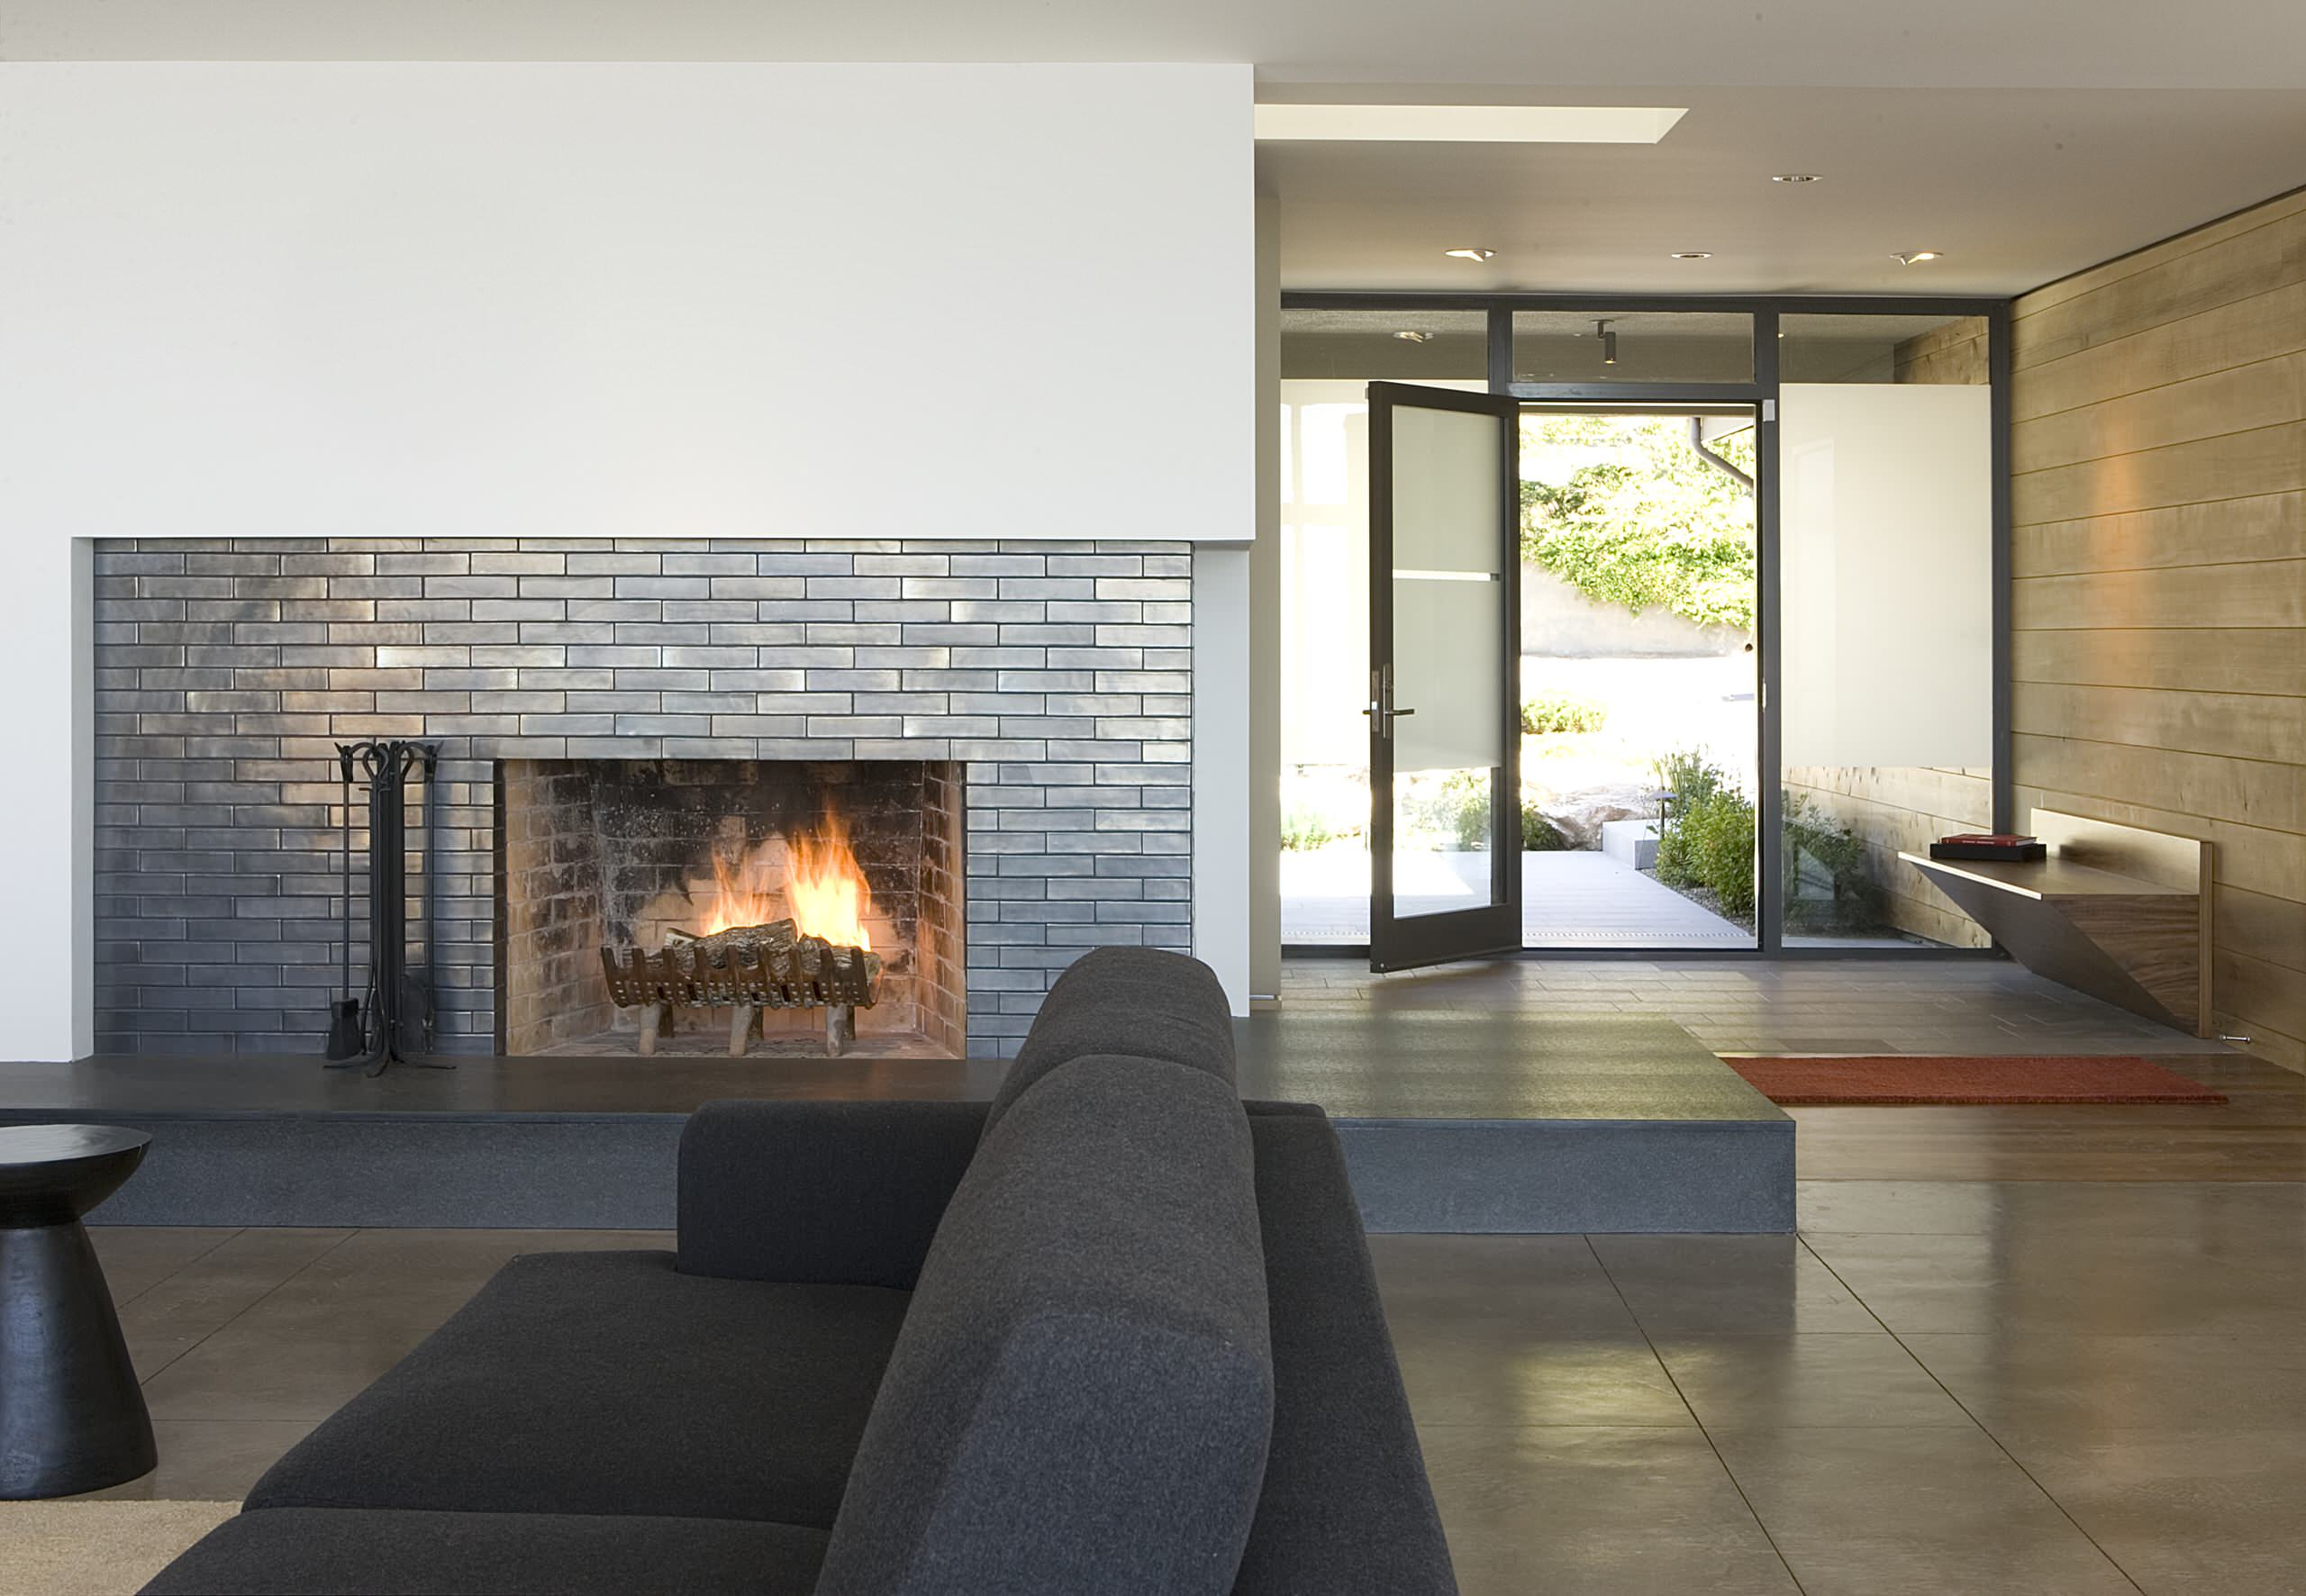 tile floor in front of fireplace ideas